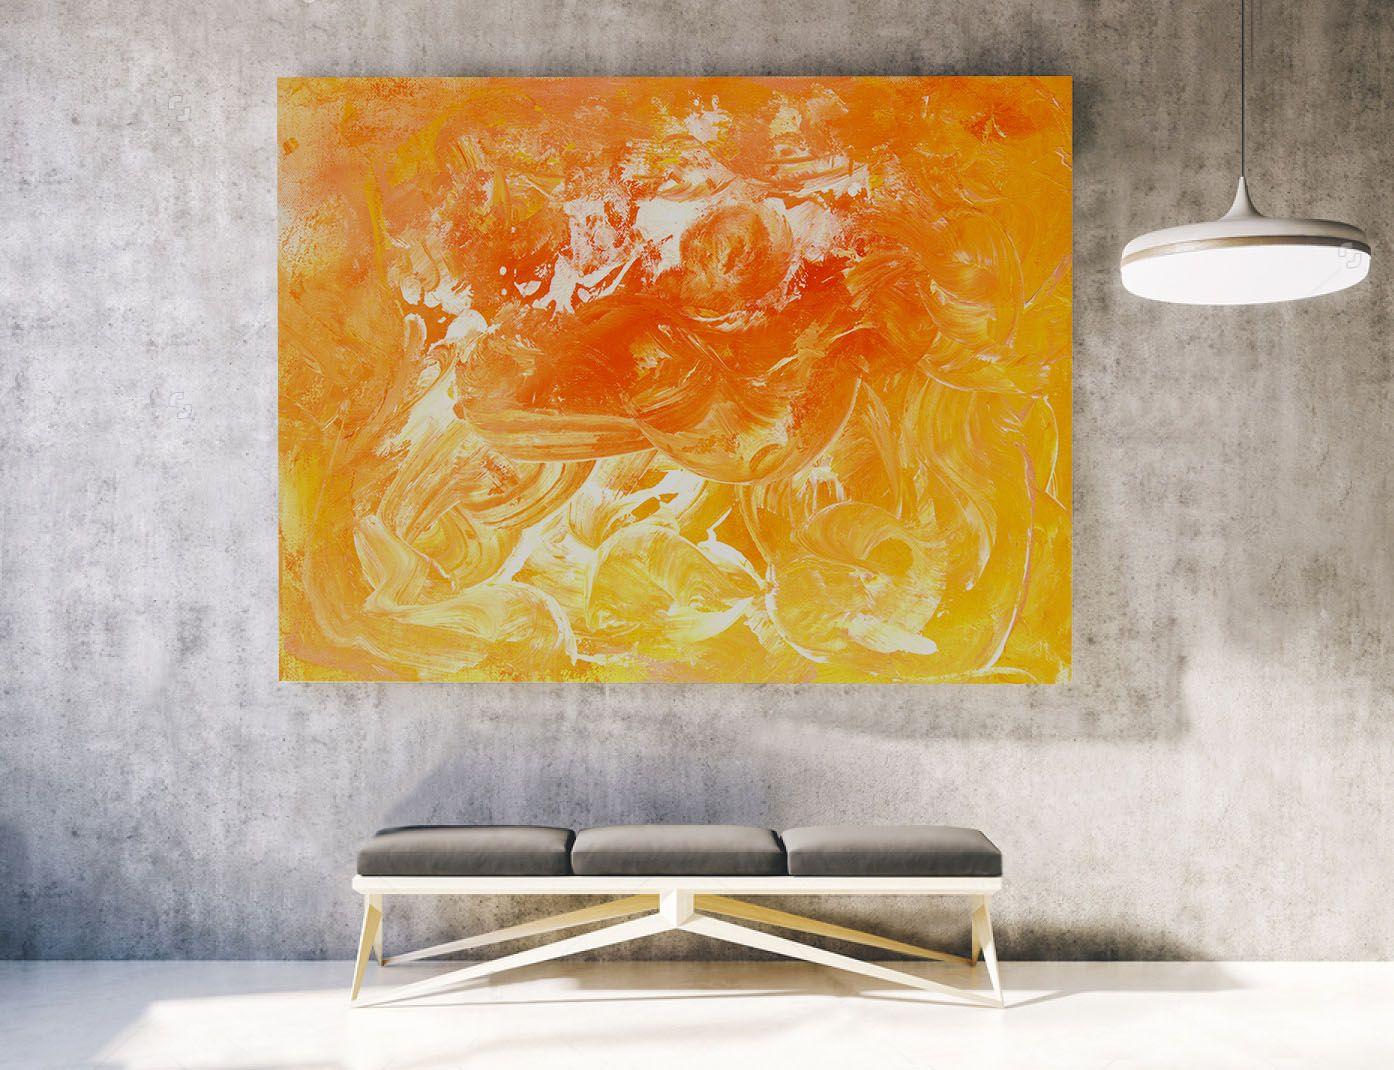 Large abstract painting acrylic canvas art livingroom decor landscape also rh pinterest